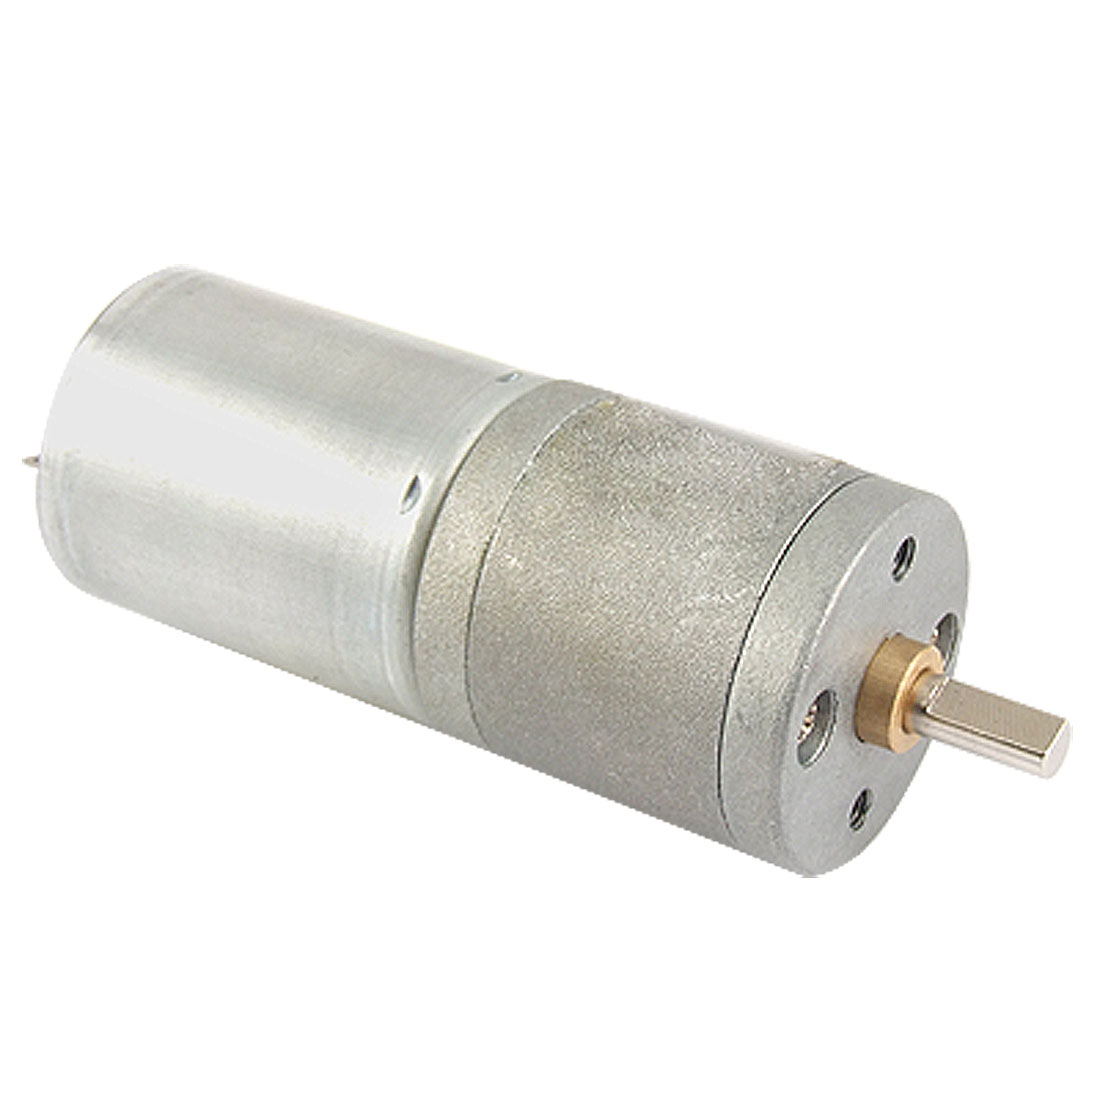 Electric 2 Terminal Connector DC12V 0.4-0.5A 10RPM DC Geared Motor